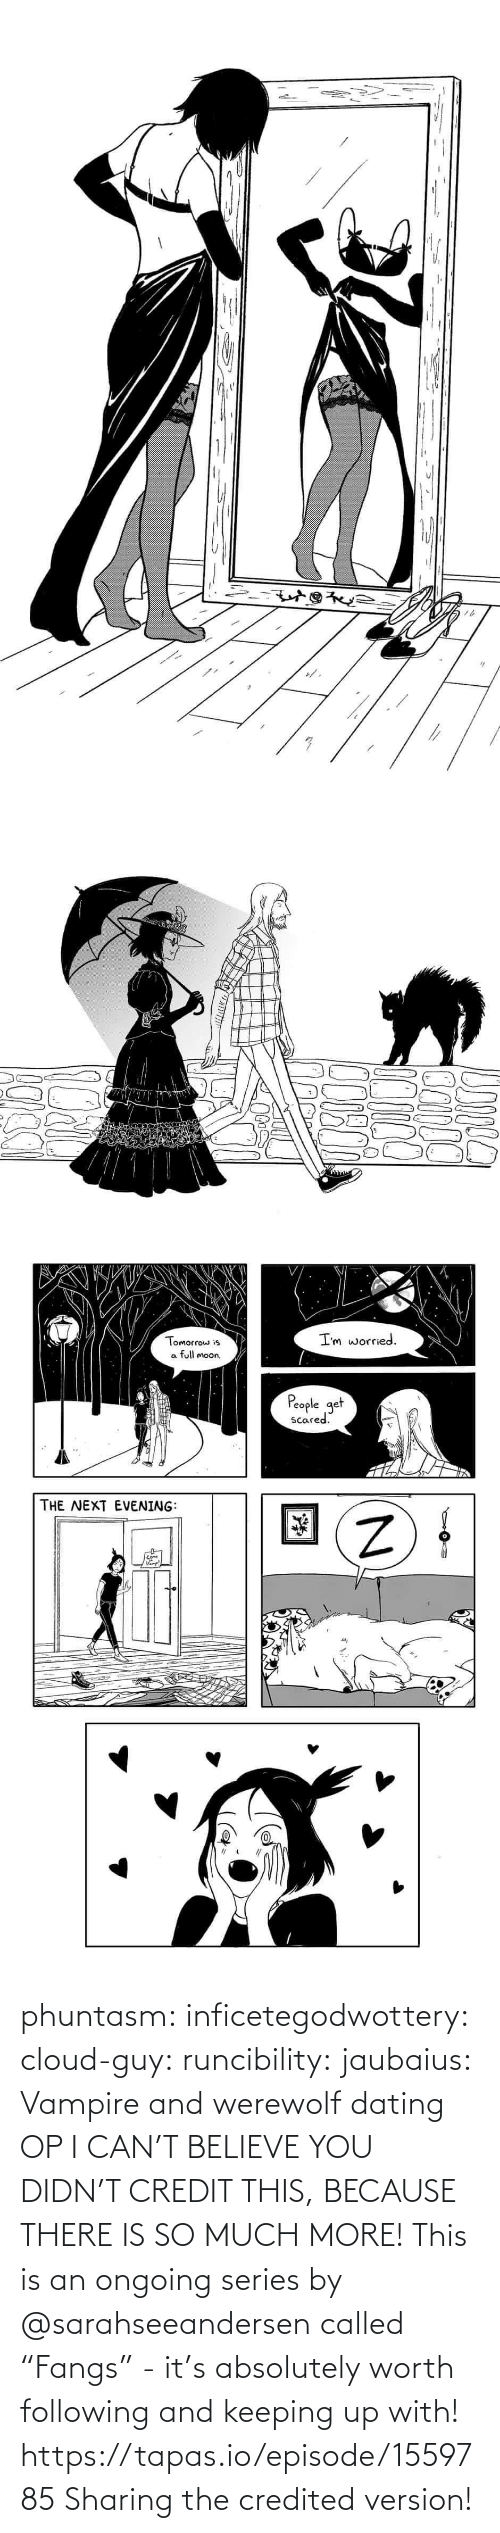 "werewolf: phuntasm: inficetegodwottery:  cloud-guy:   runcibility:  jaubaius:   Vampire and werewolf dating   OP I CAN'T BELIEVE YOU DIDN'T CREDIT THIS, BECAUSE THERE IS SO MUCH MORE! This is an ongoing series by @sarahseeandersen called ""Fangs"" - it's absolutely worth following and keeping up with! https://tapas.io/episode/1559785    Sharing the credited version!"